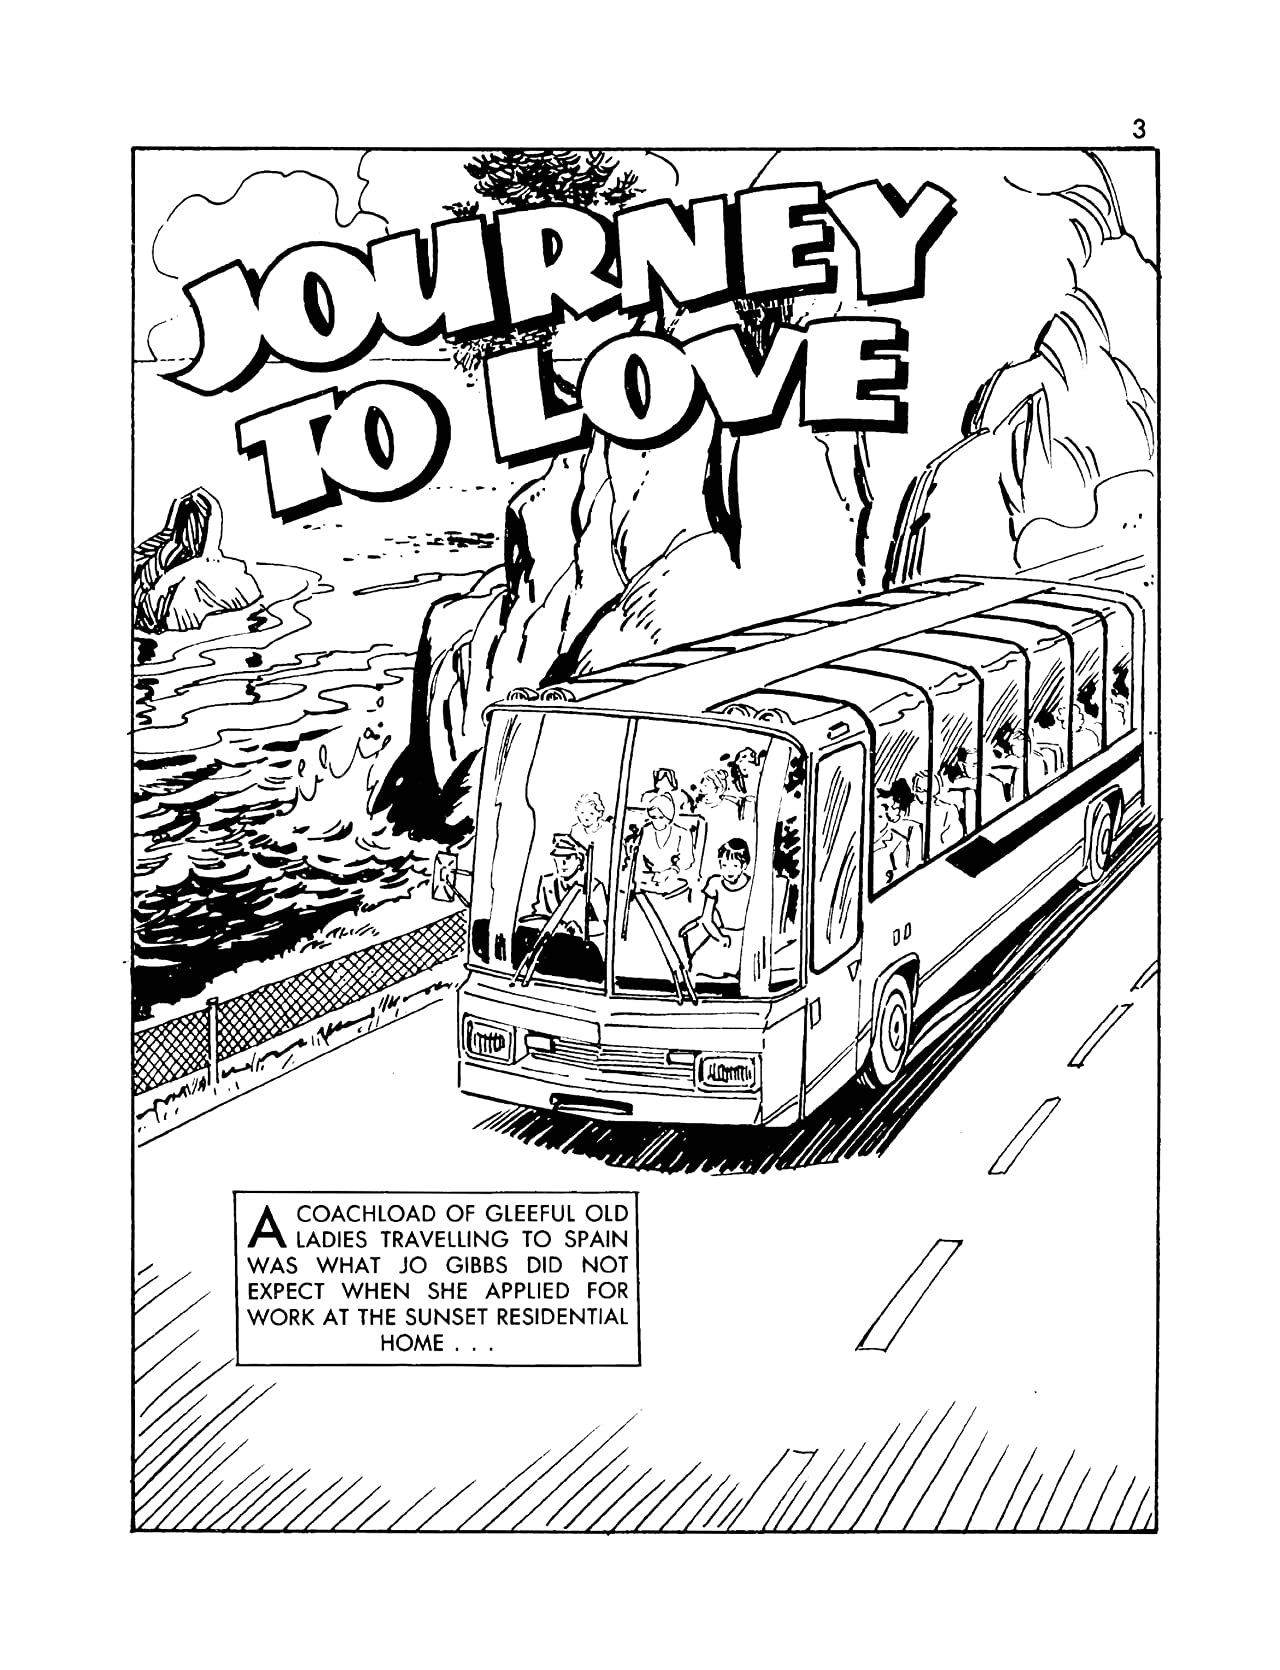 STAR - Love Stories In Pictures #8: Journey To Love